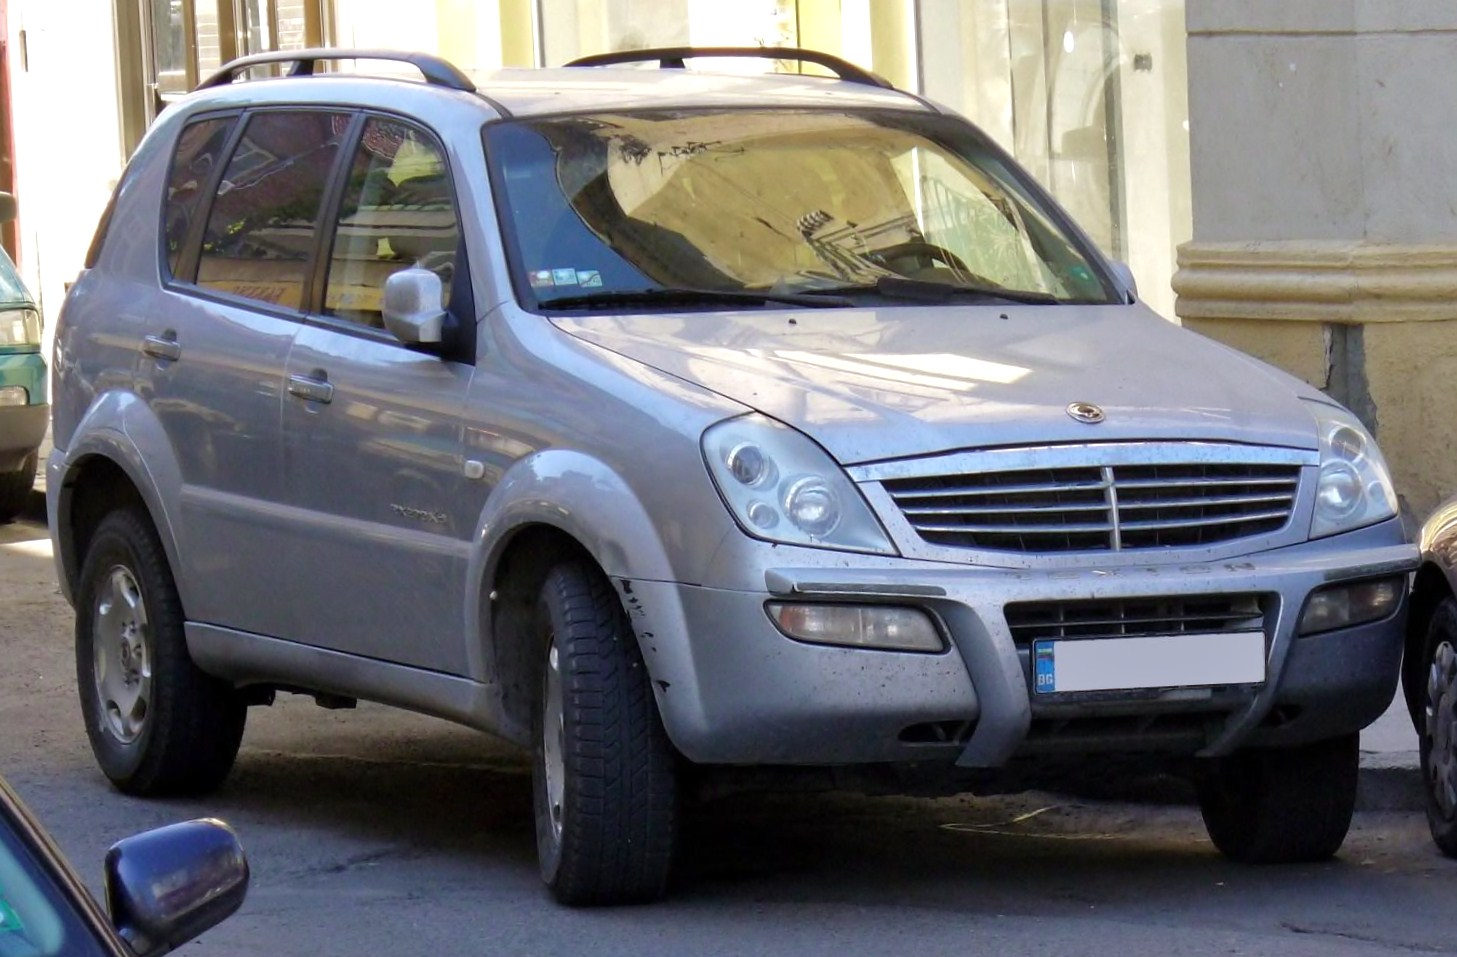 ssangyong rexton rx 270 xdi photos and comments www. Black Bedroom Furniture Sets. Home Design Ideas